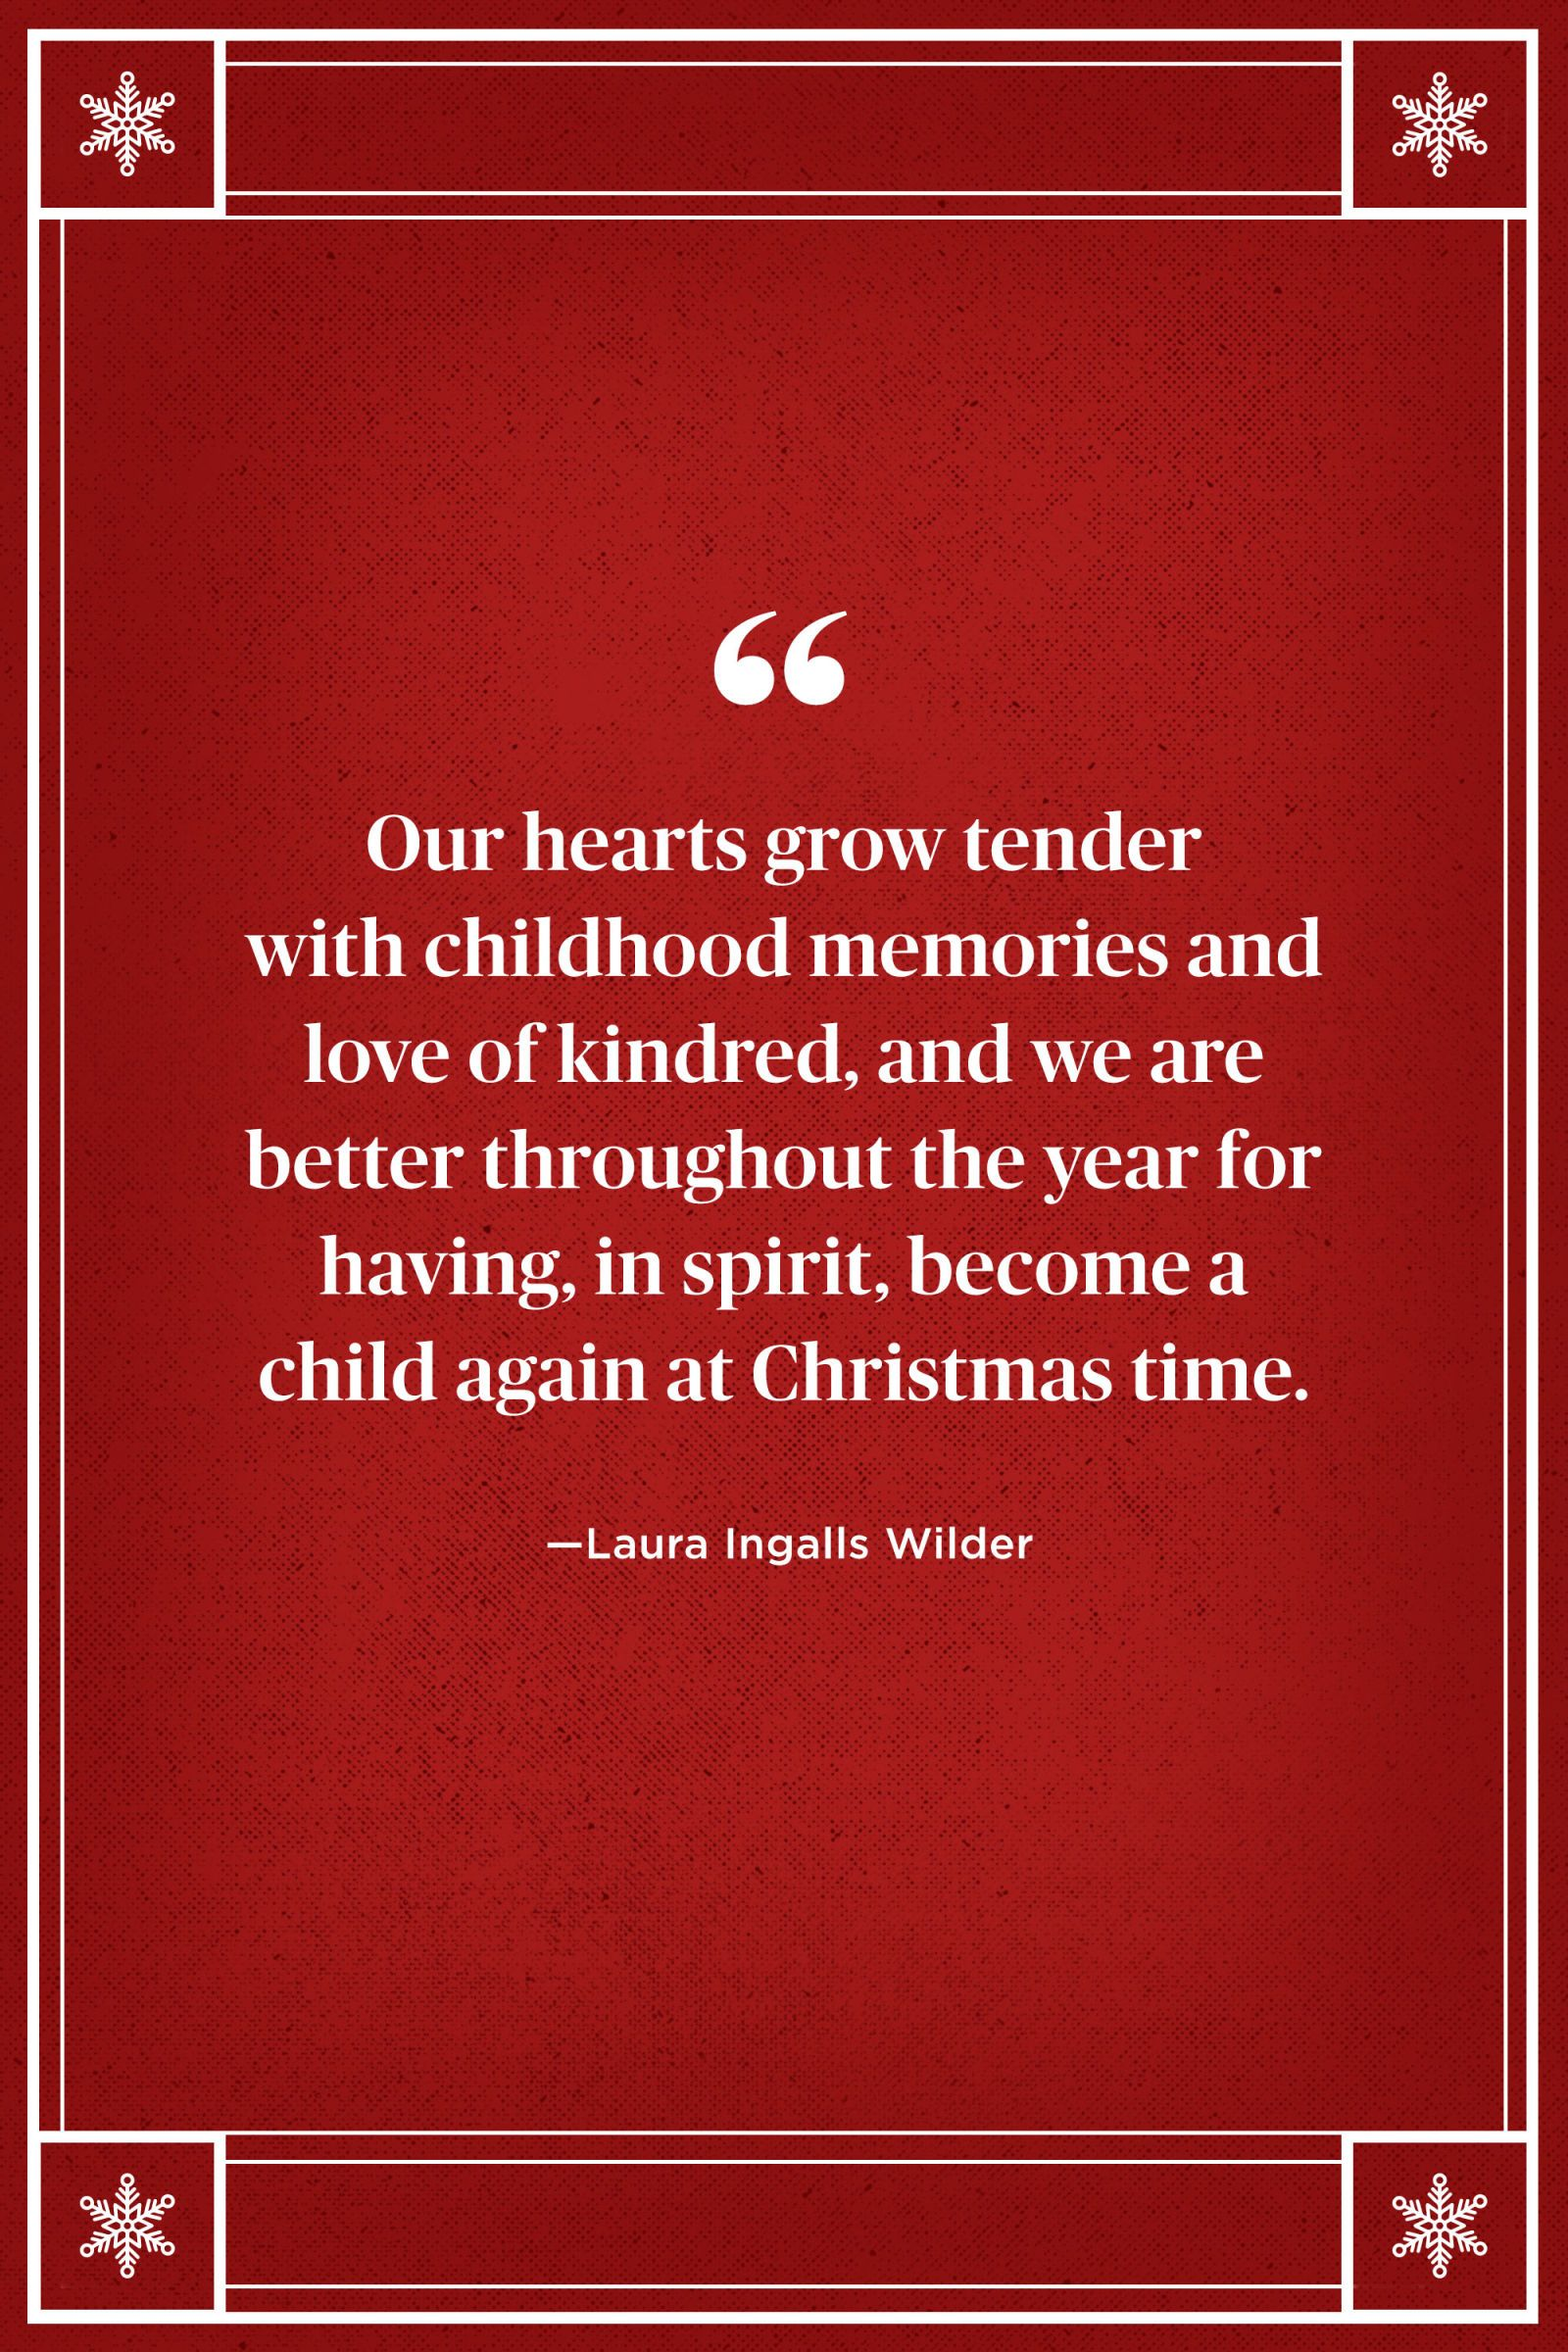 20 Christmas Quotes That Perfectly Capture The Holidays